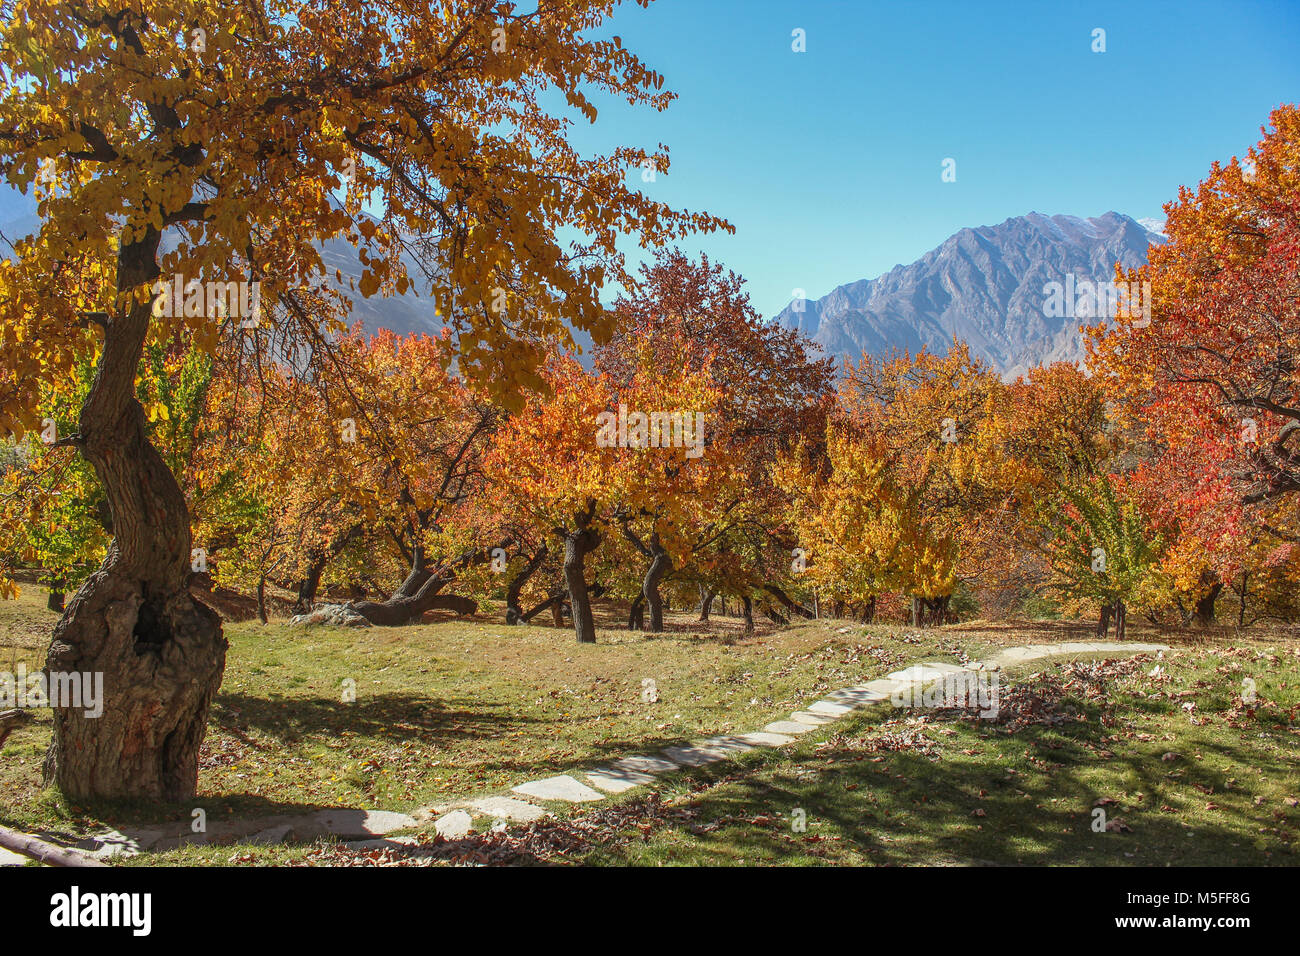 Royal garden in autumn. Altit fort, Hunza Pakistan. - Stock Image